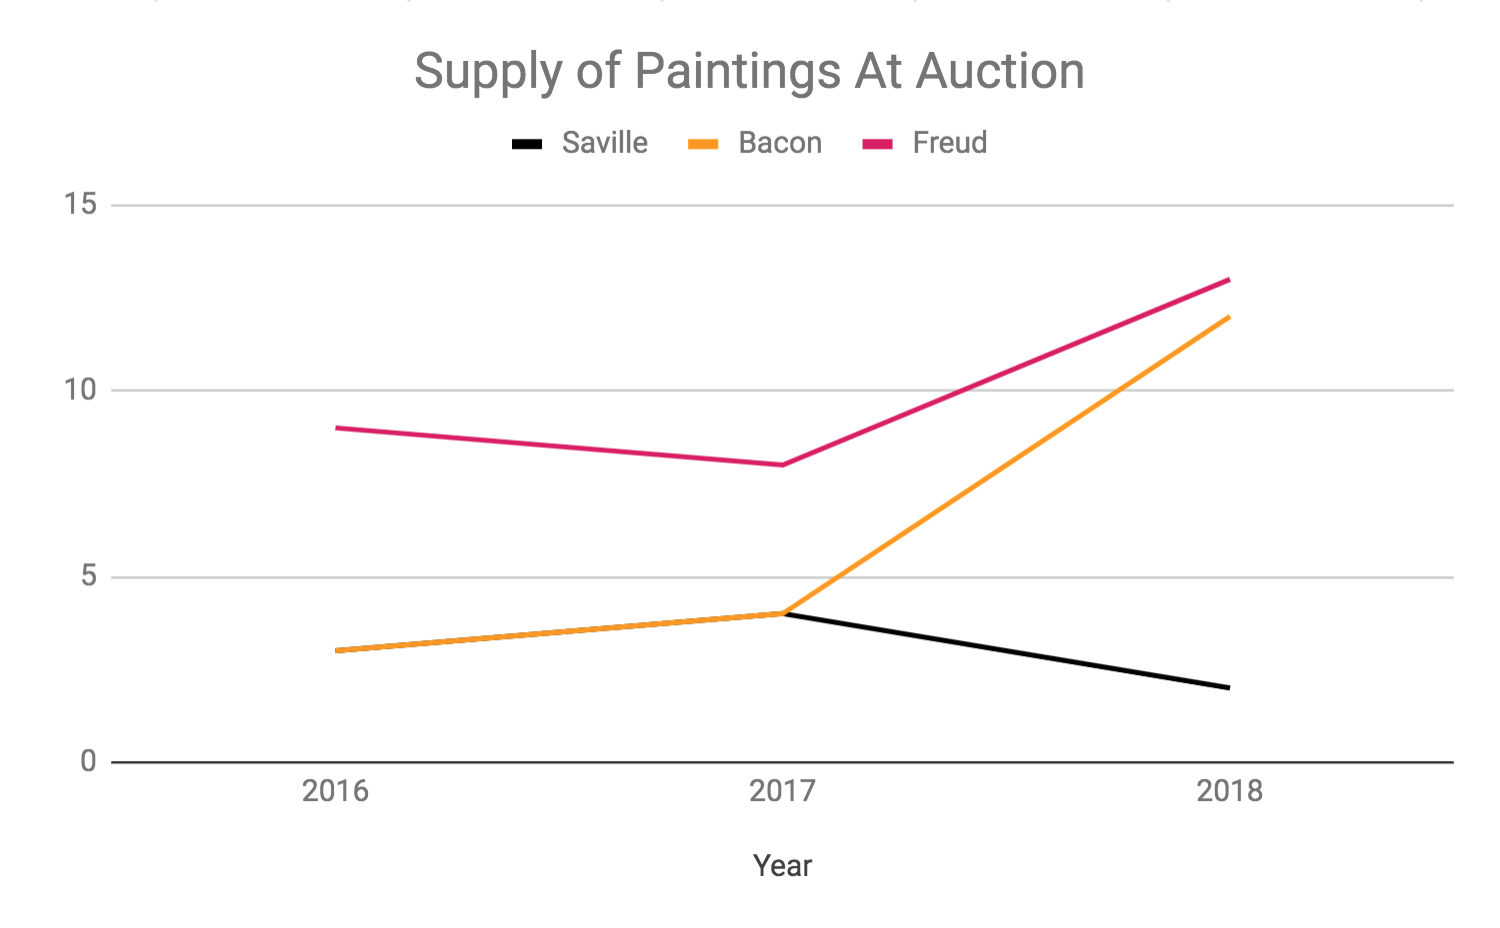 Supply of works at auction priced at at $100K or more.